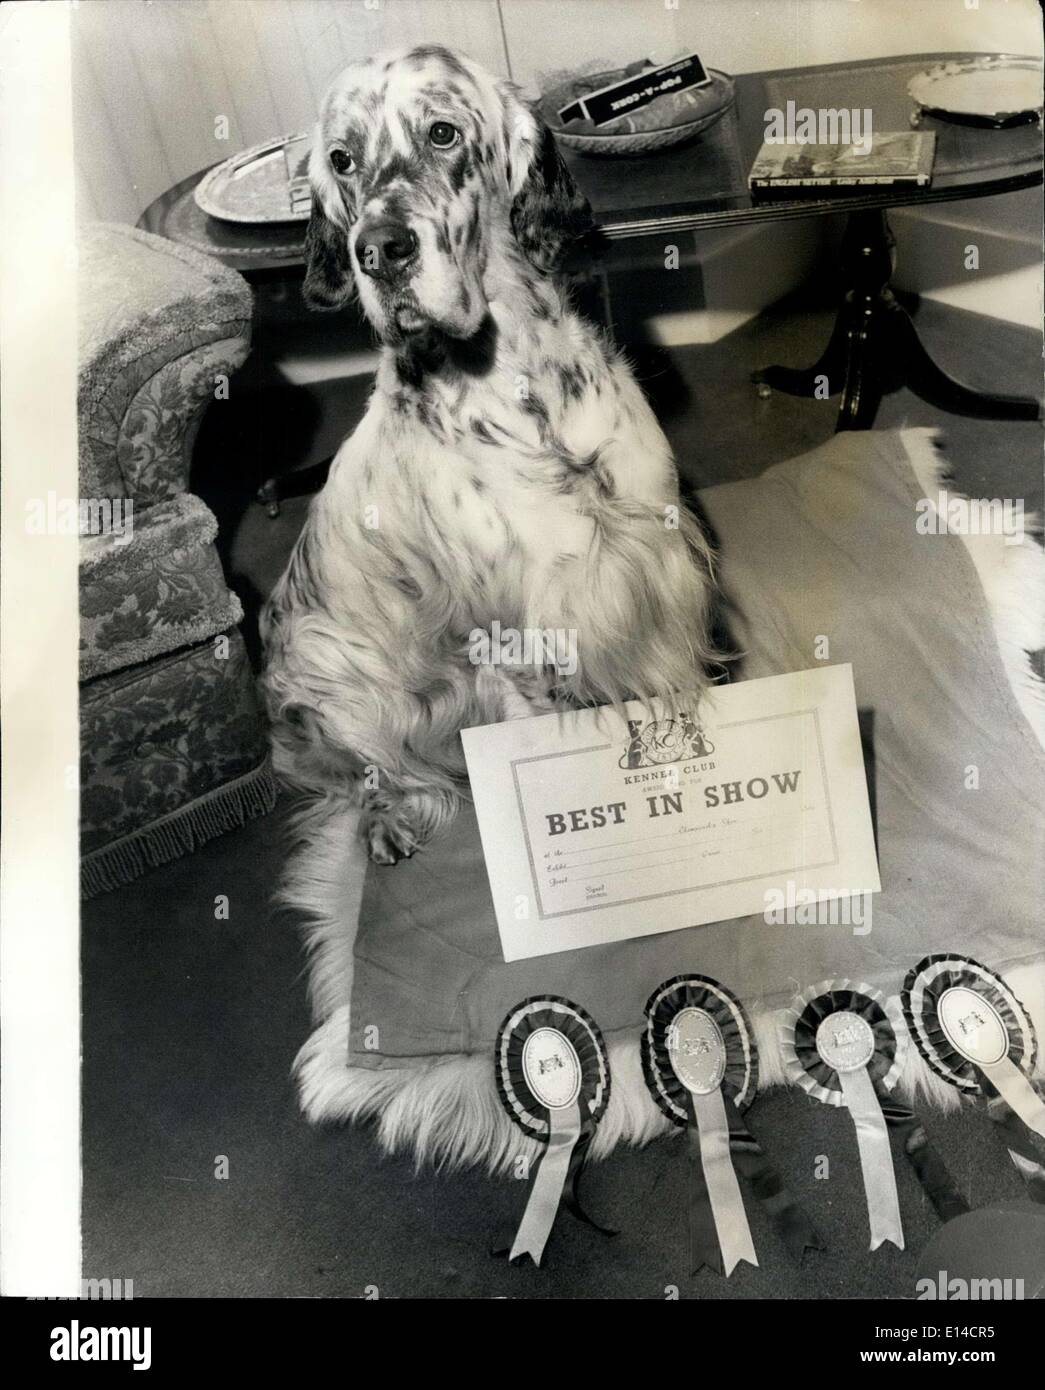 Apr. 17, 2012 - Crufts Dog Show: Crufts Champion 1977 English Setter this year's supreme champion ''Bourne House Dancing master' - Stock Image